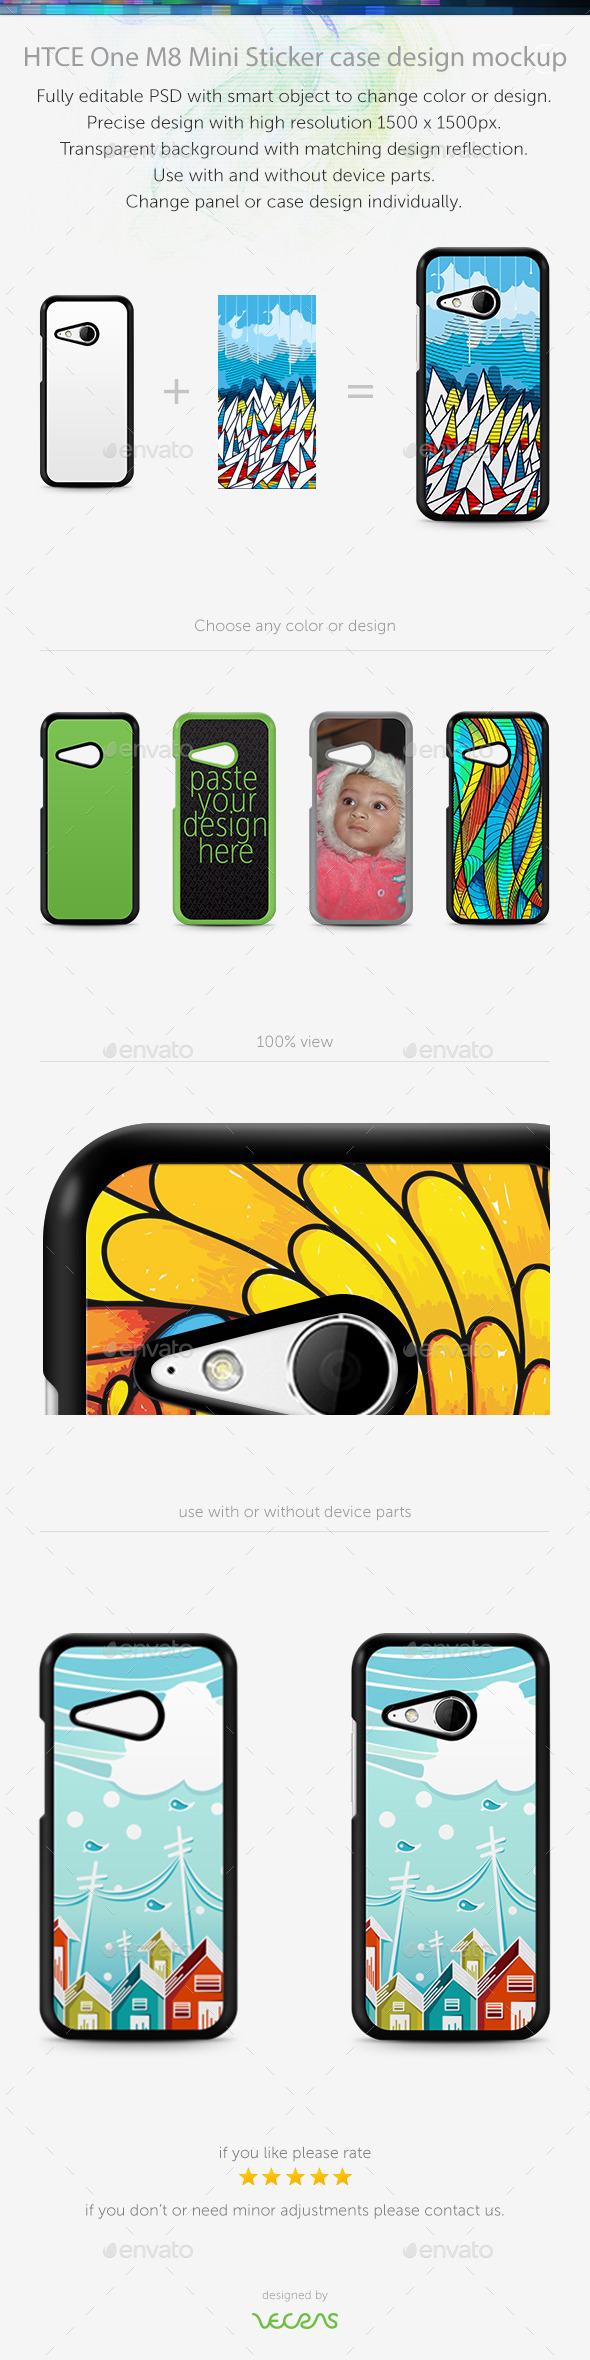 GraphicRiver HTCE One M8 Mini Sticker Case Design Mockup 10401456